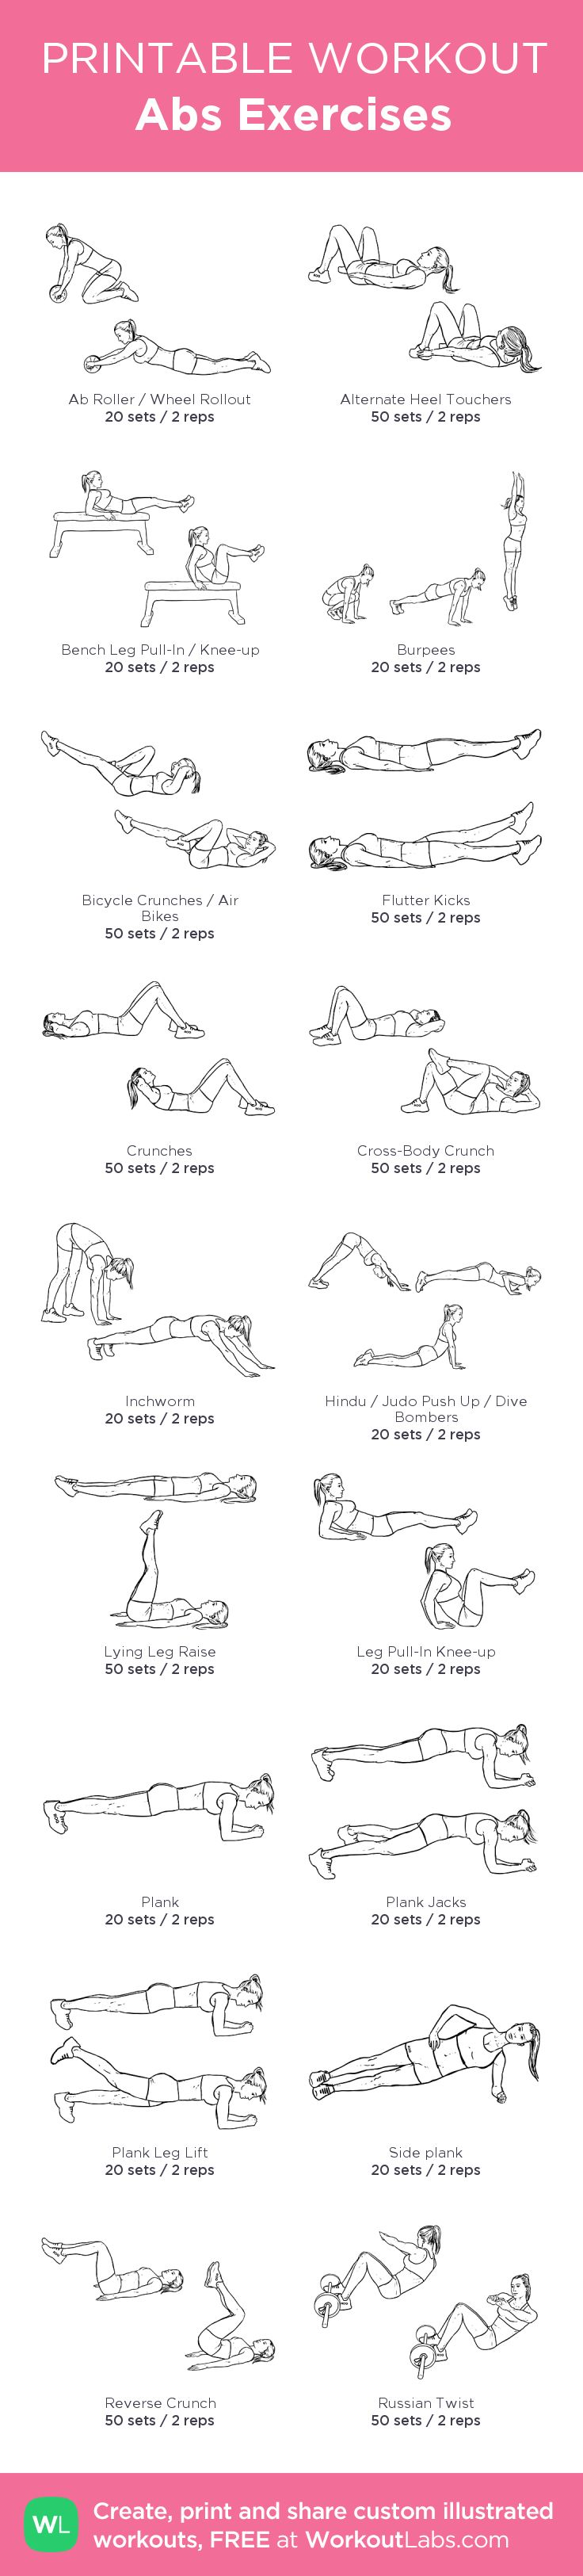 Abs Exercises: my custom printable workout by @WorkoutLabs #workoutlabs #customworkout